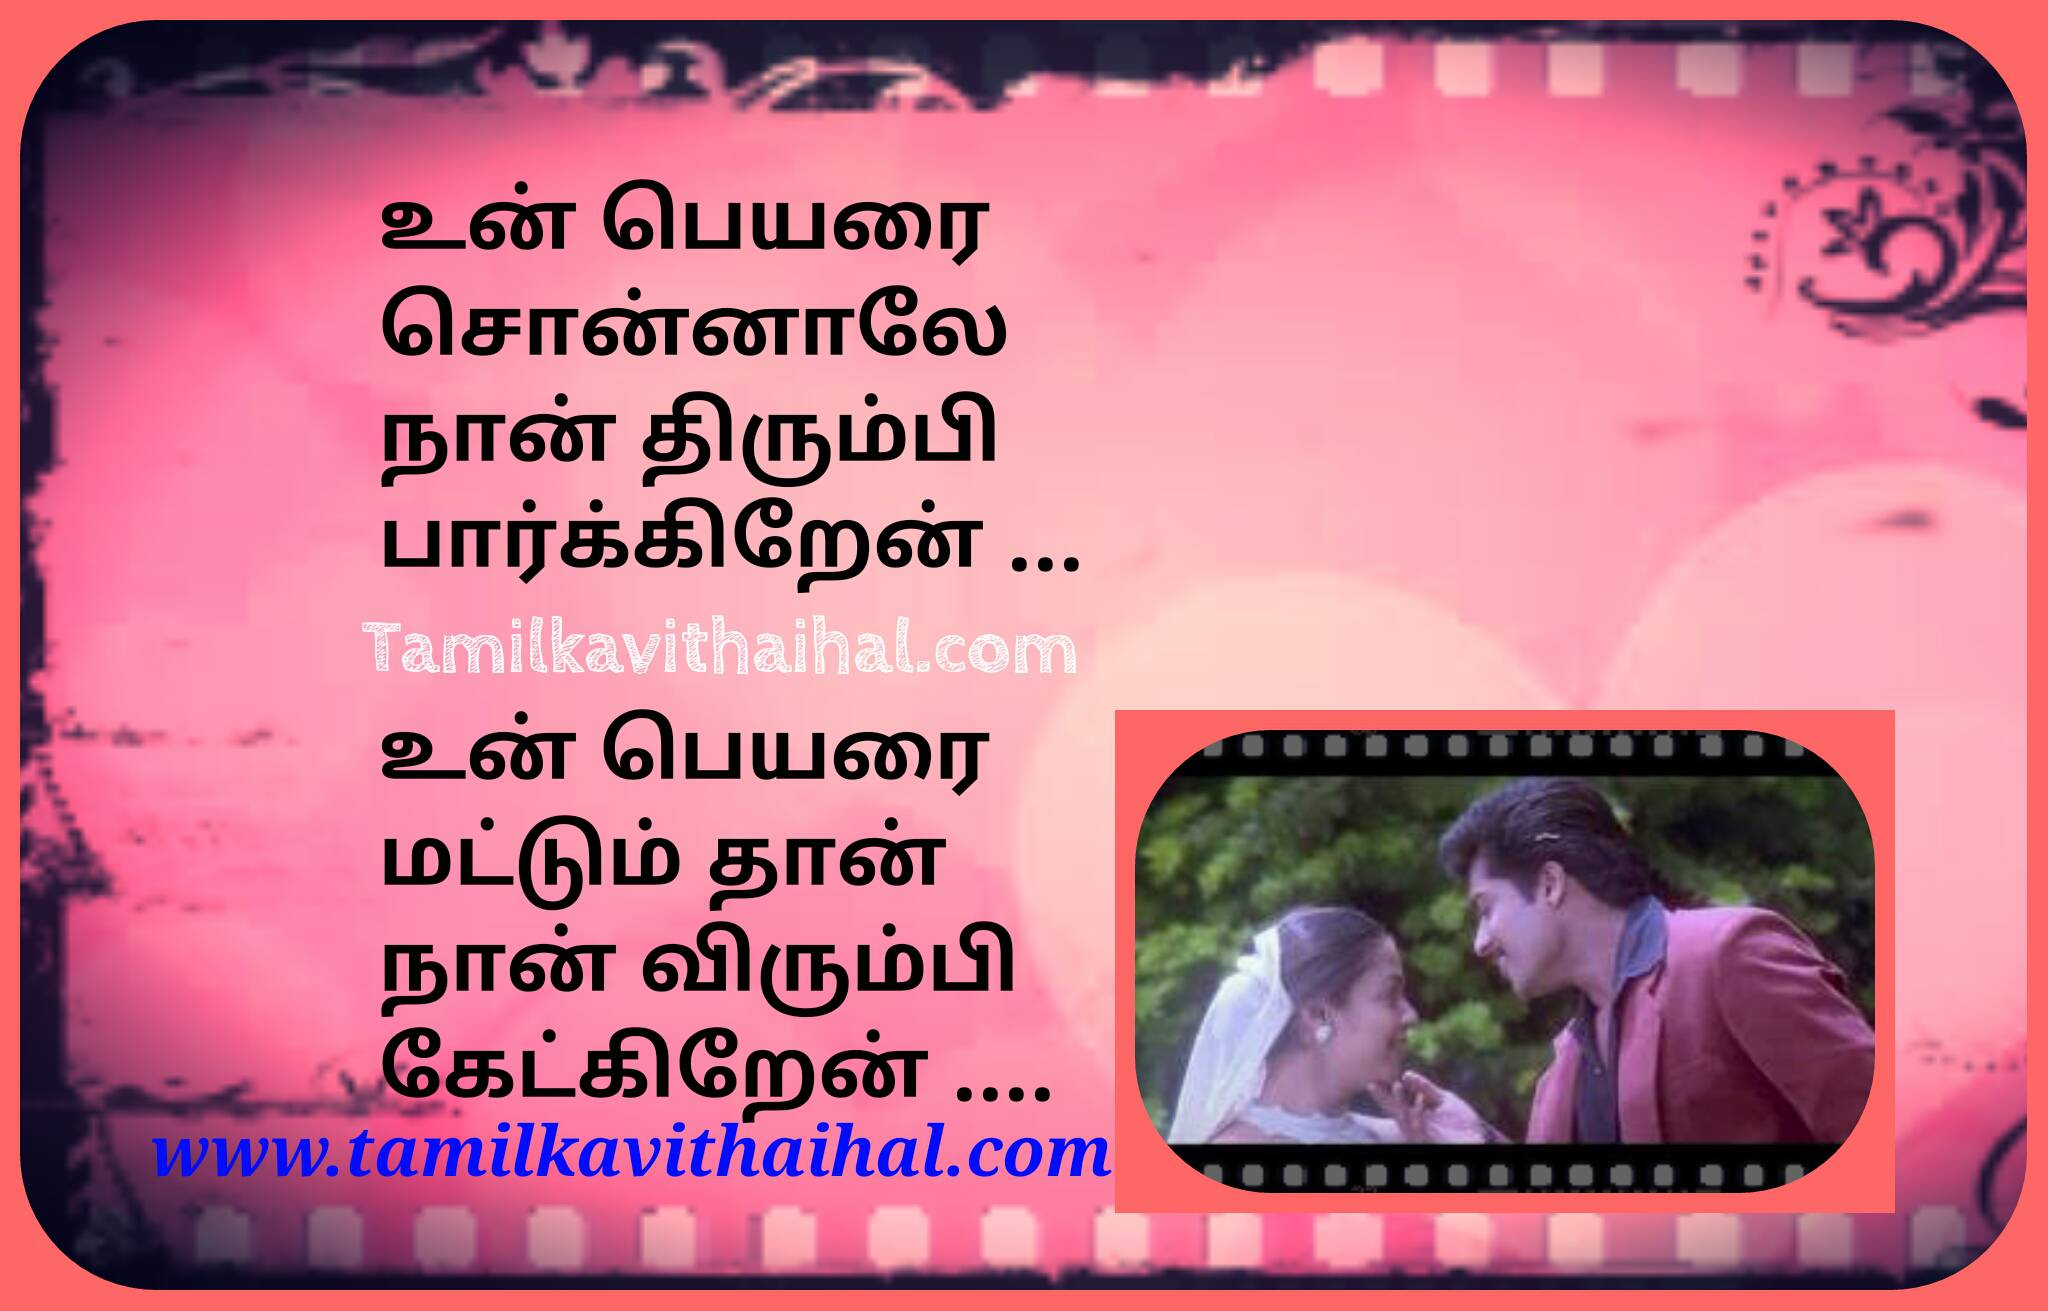 Awesome love romance from surya jothika poovellam ketuppar movie song download yuvan music